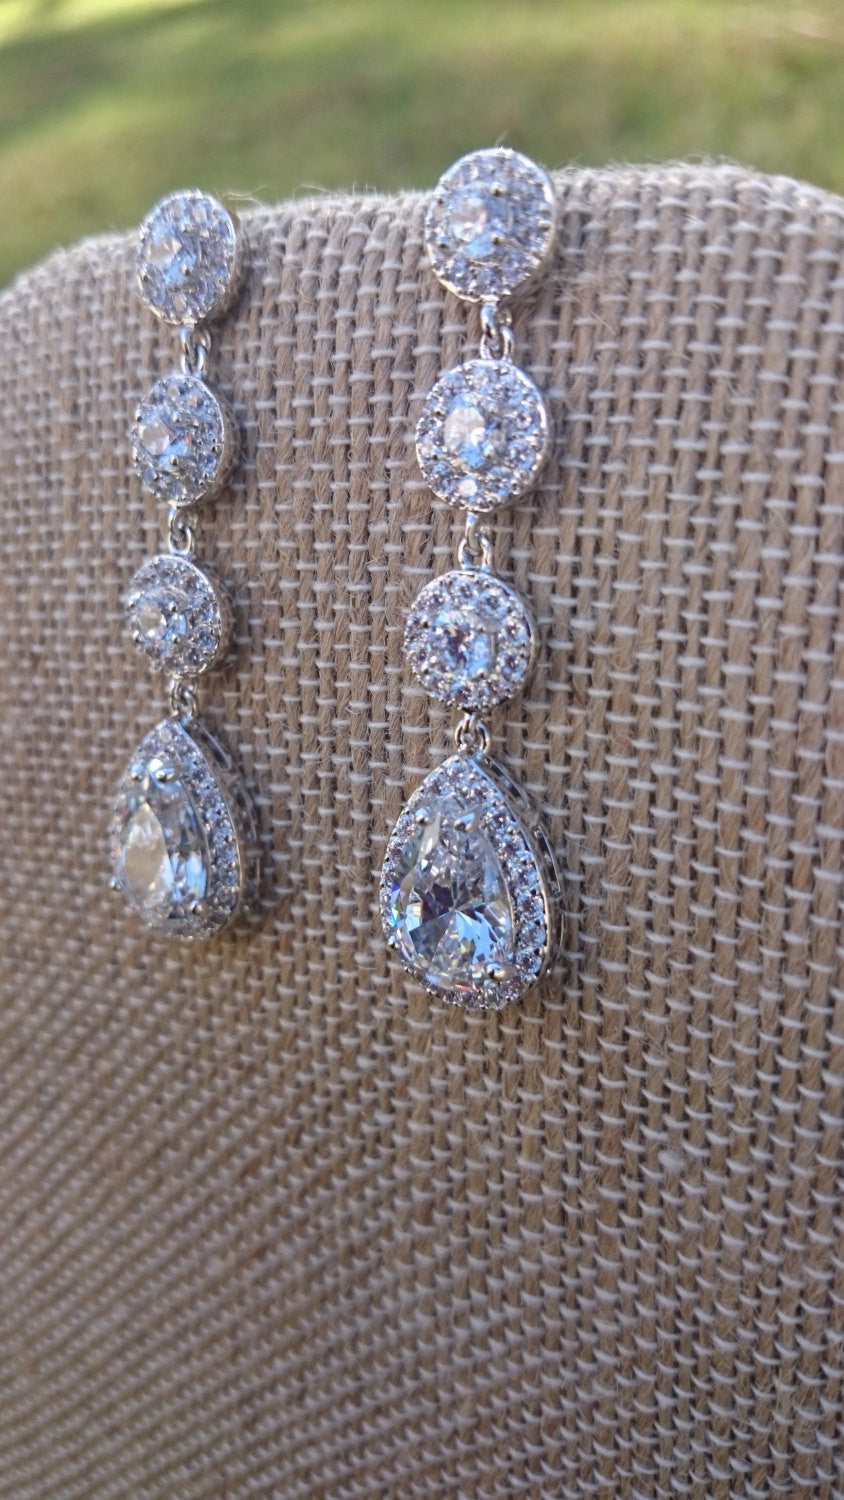 Long Bridal Earrings, CZ Earrings, Diamond Bridal Earrings, Long Earrings, Cubic Zirconia, Wedding Earrings, Prom Pageant, Bridesmaid Gifts